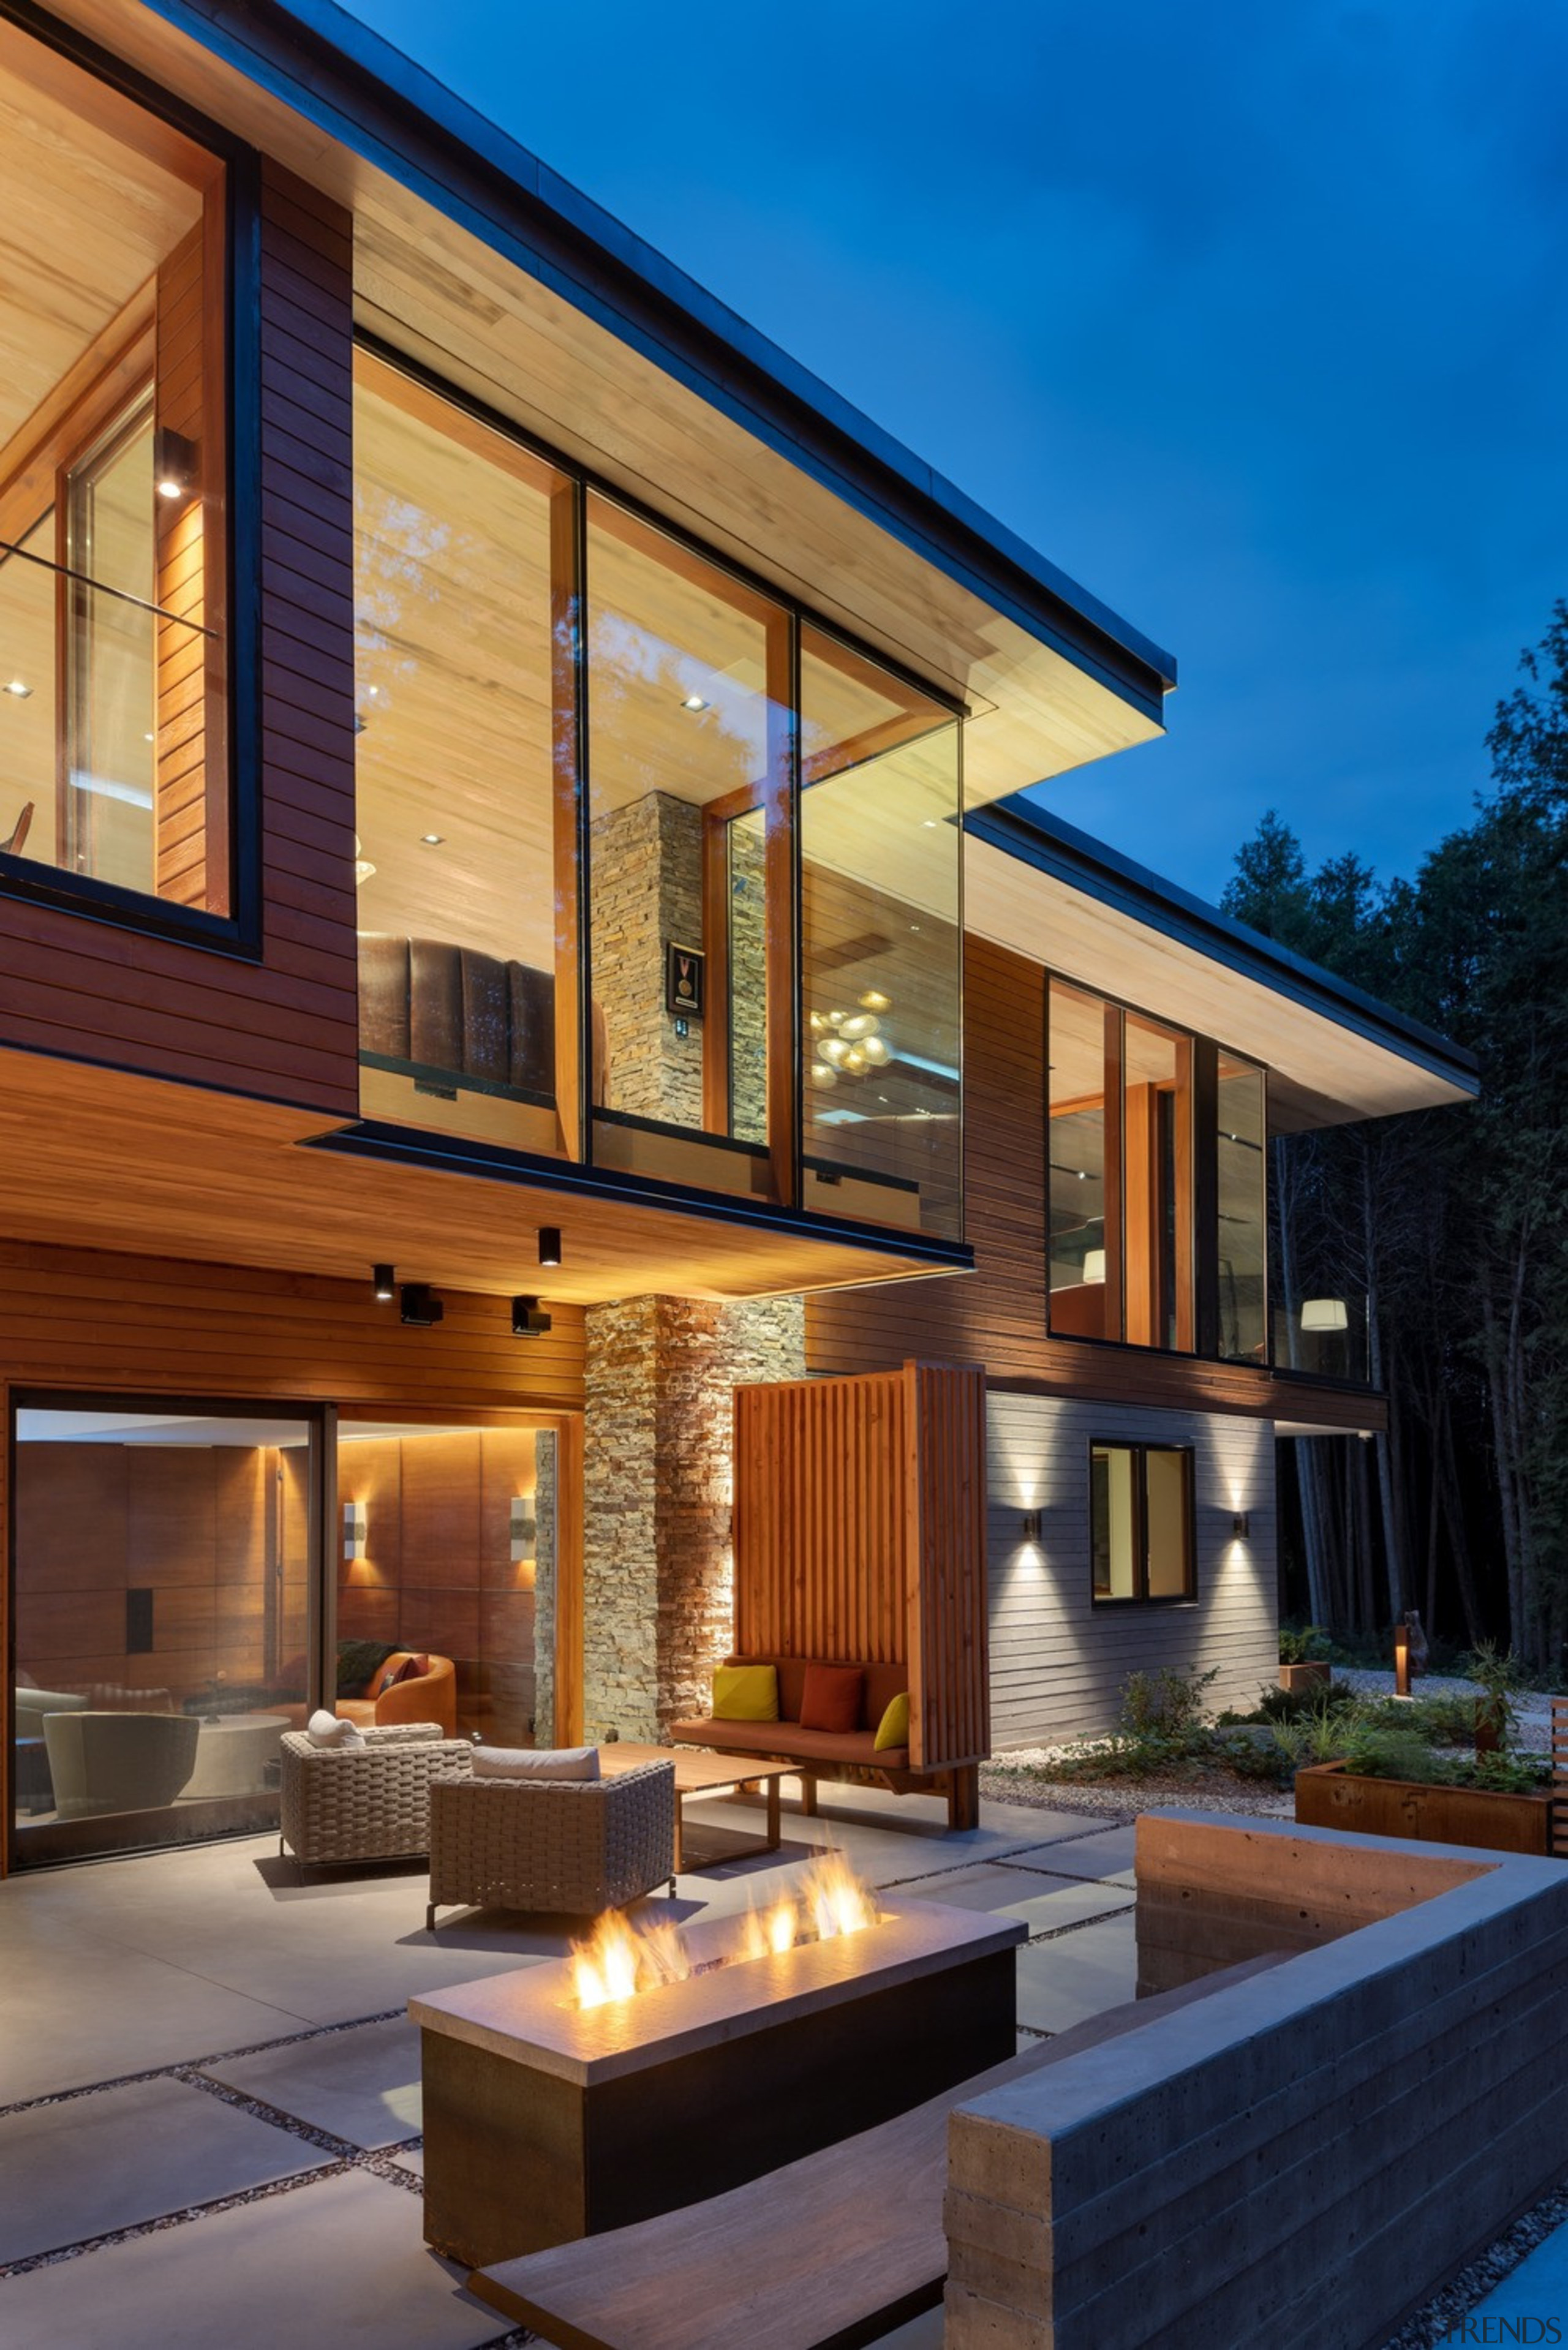 Evening view of house and terrace from the architecture, backyard, building, courtyard, design, estate, facade, furniture, home, house, interior design, lighting, patio, property, real estate, residential area, roof, room, siding, sky, window